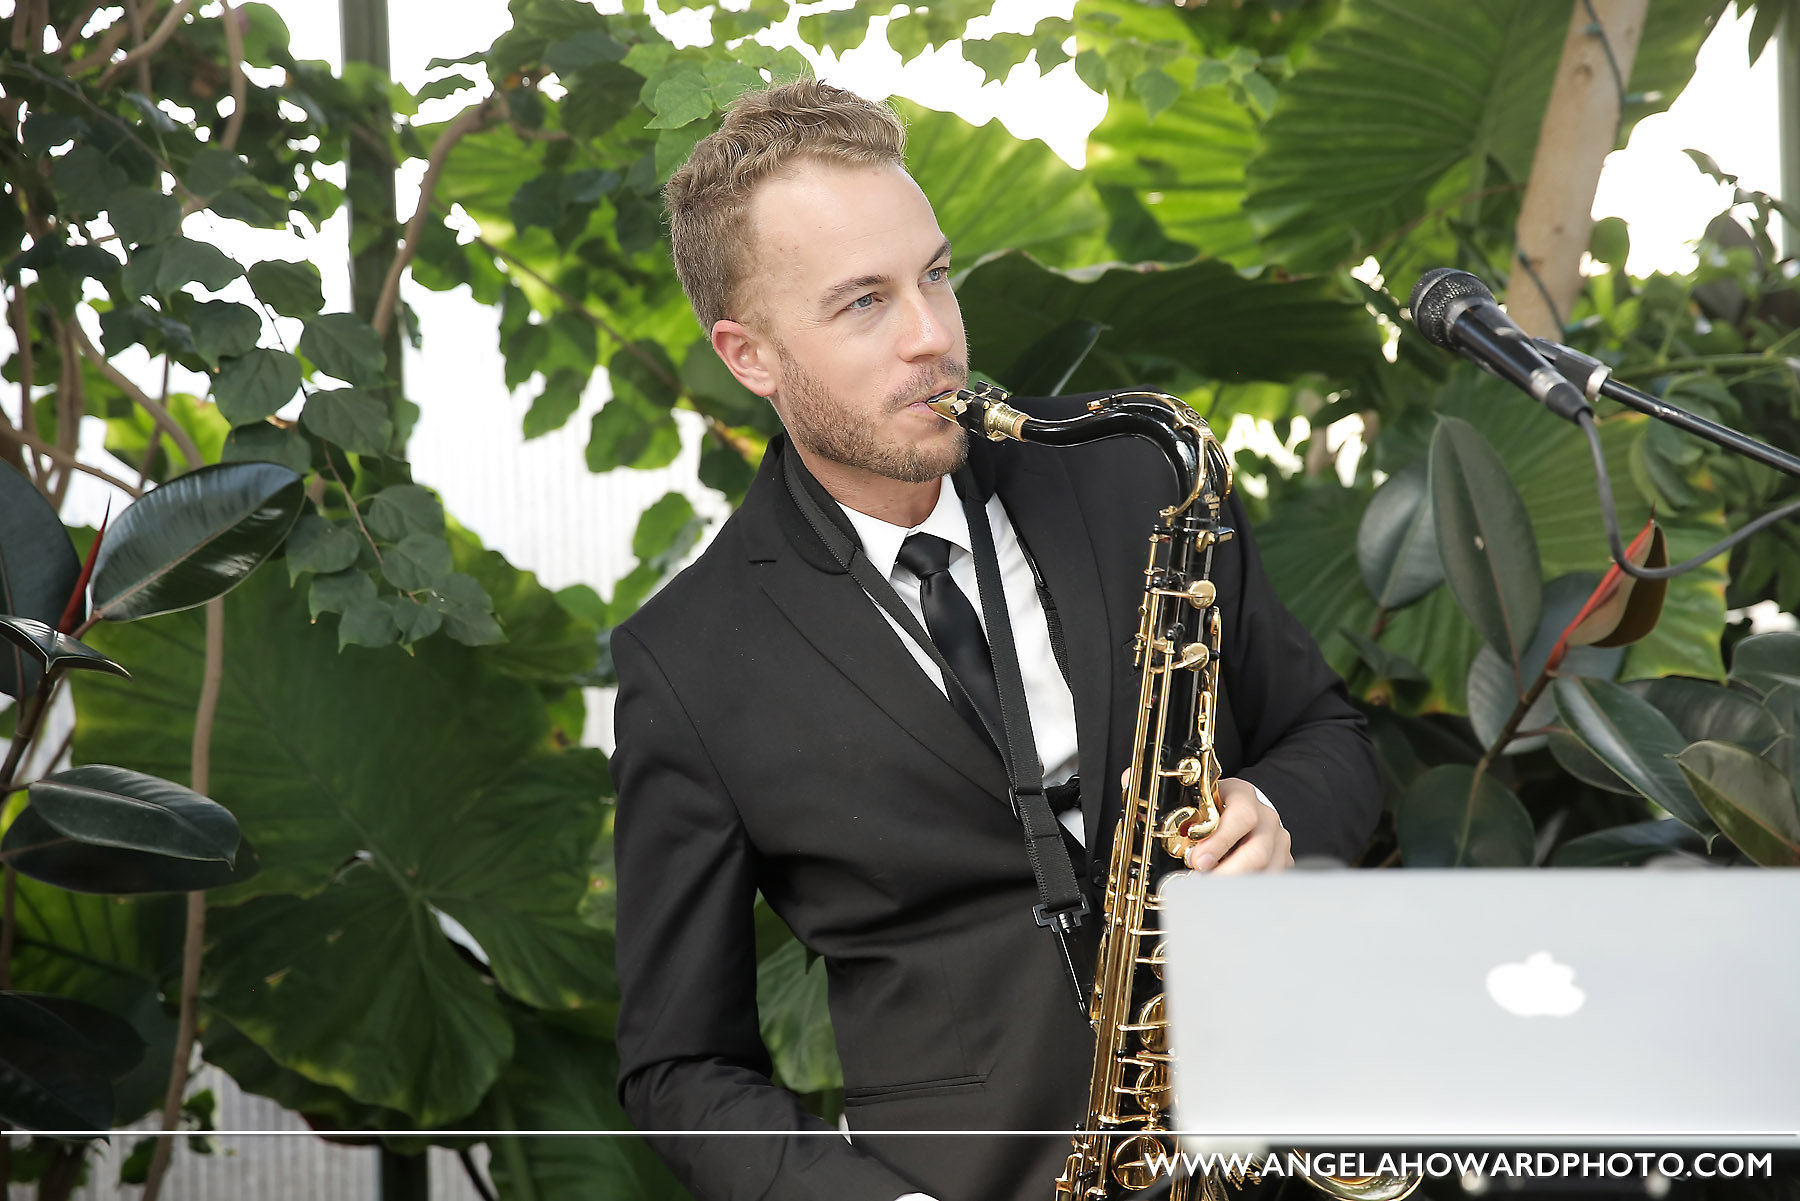 Rob on the sax. @utahbridemag #UBGWhiteParty Photo credit: Angel Howard Photography